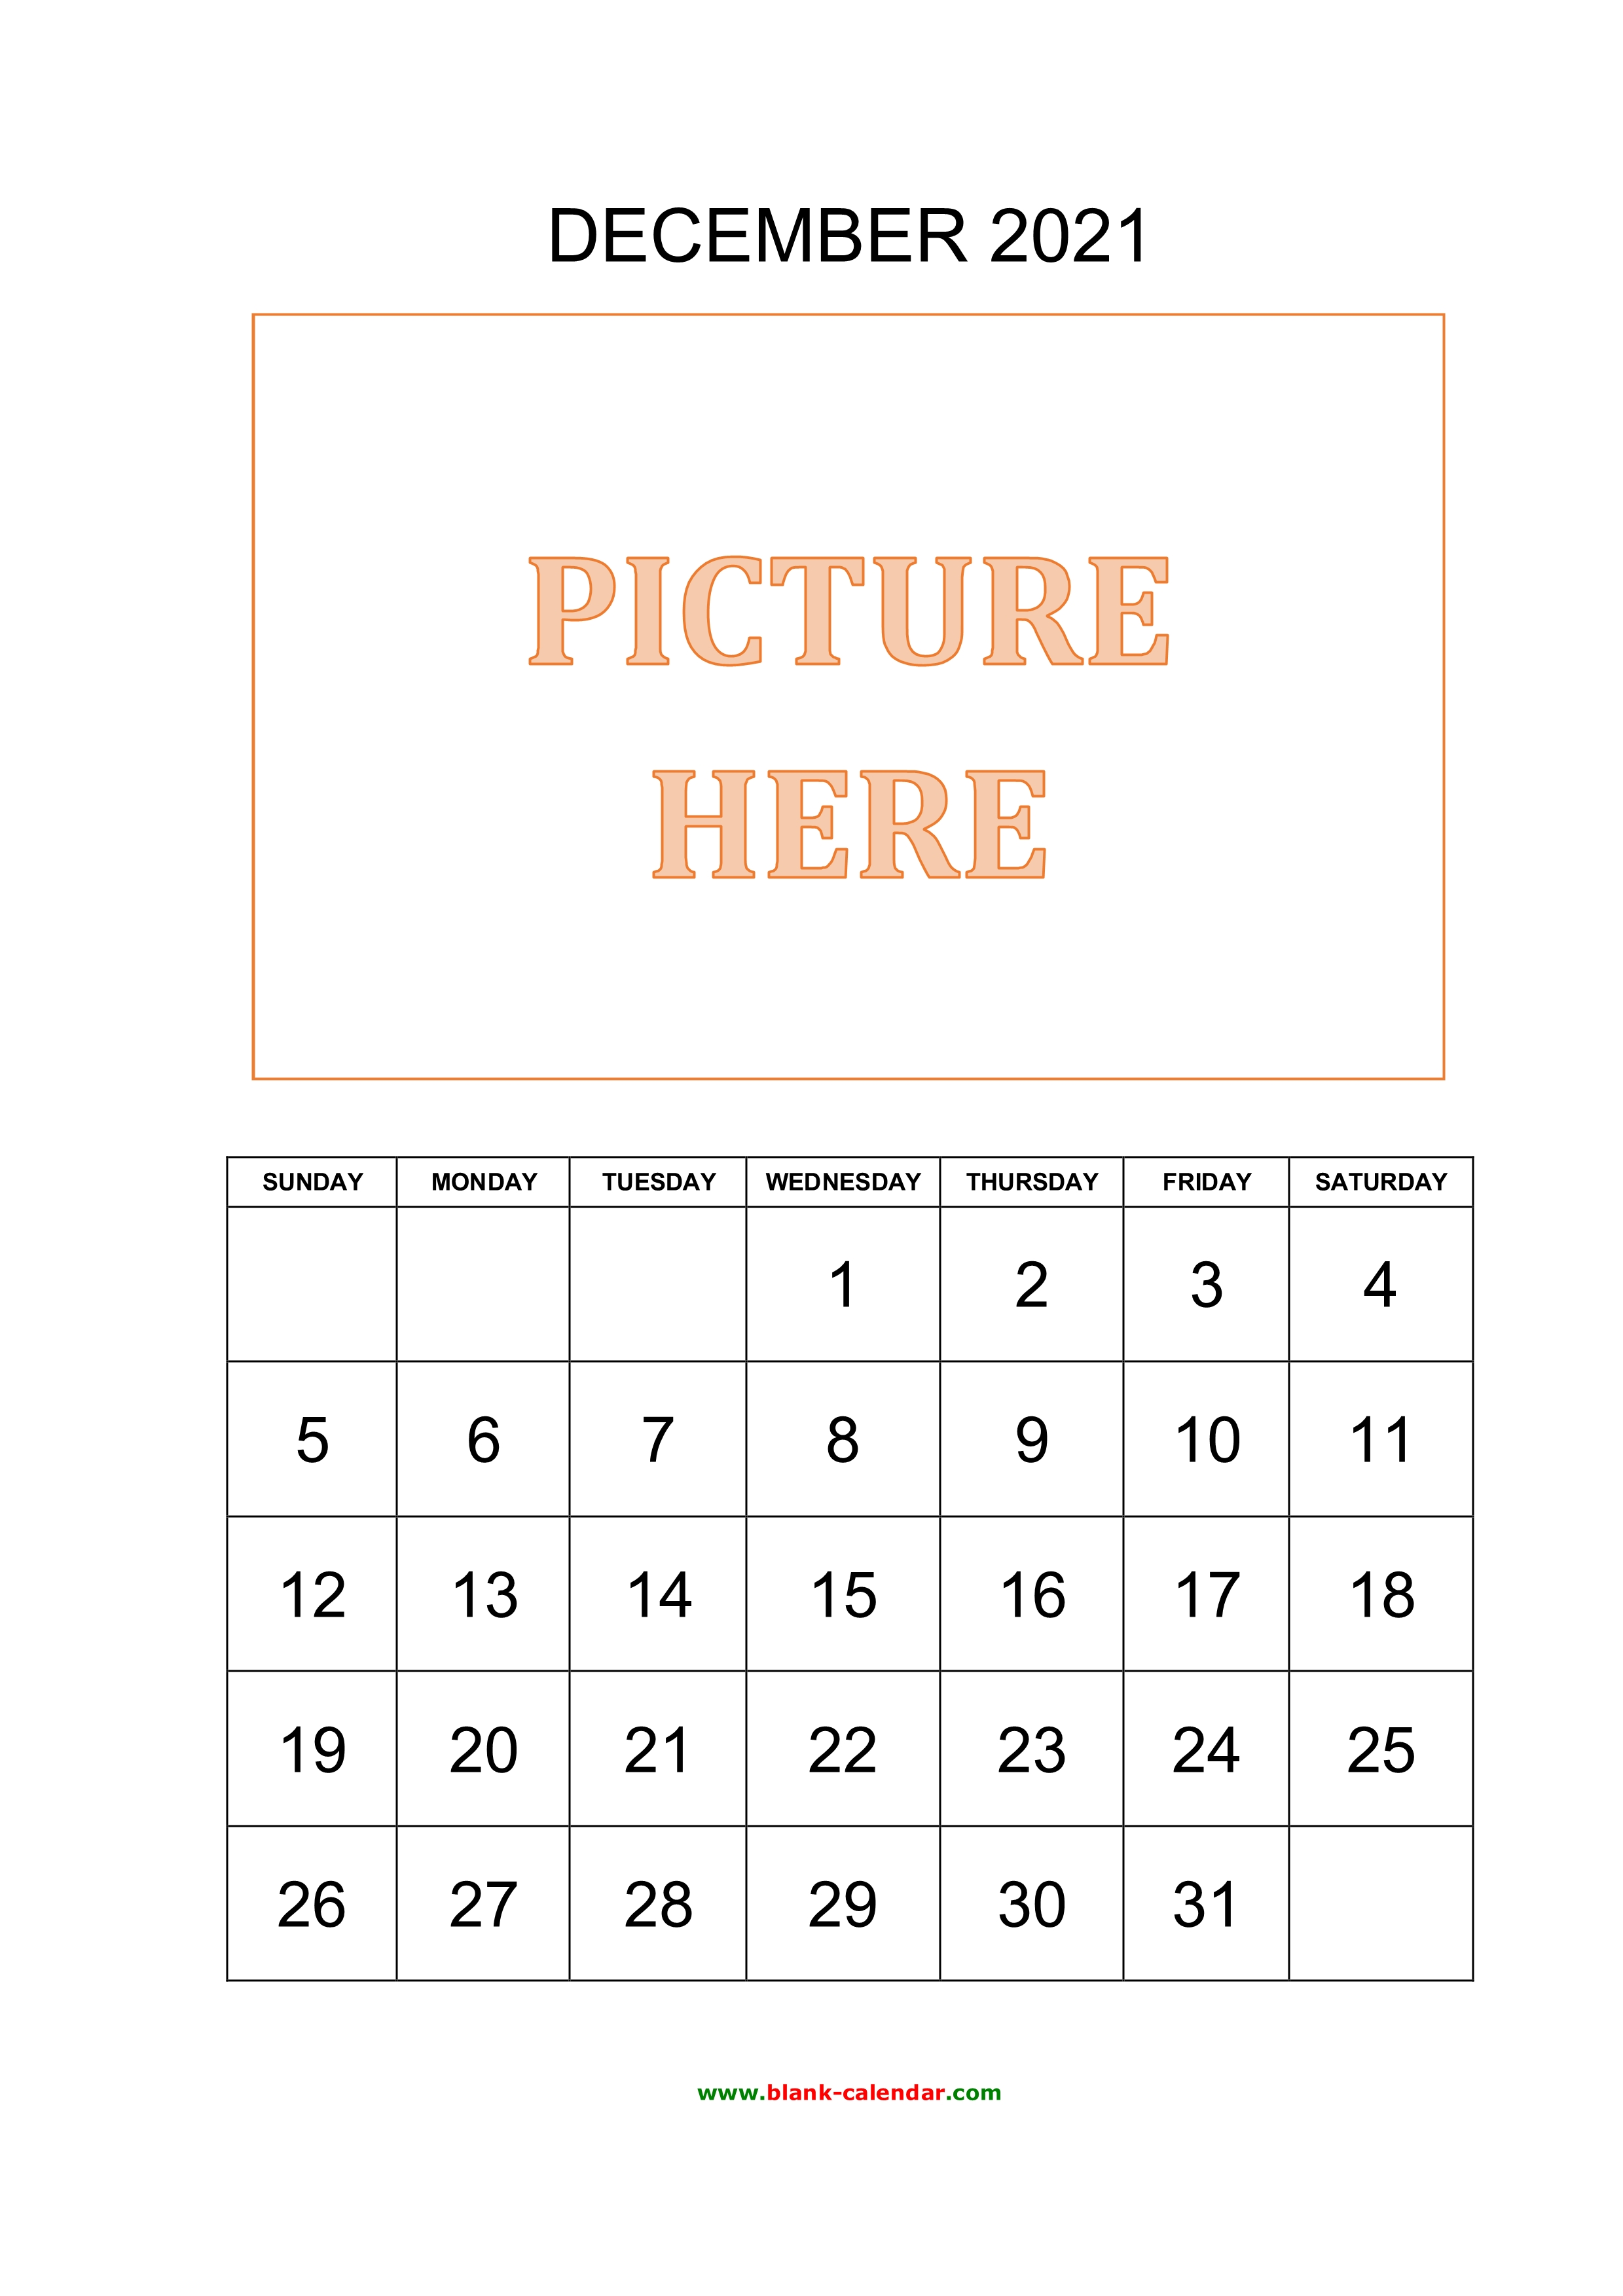 Free Download Printable December 2021 Calendar Pictures Can Be